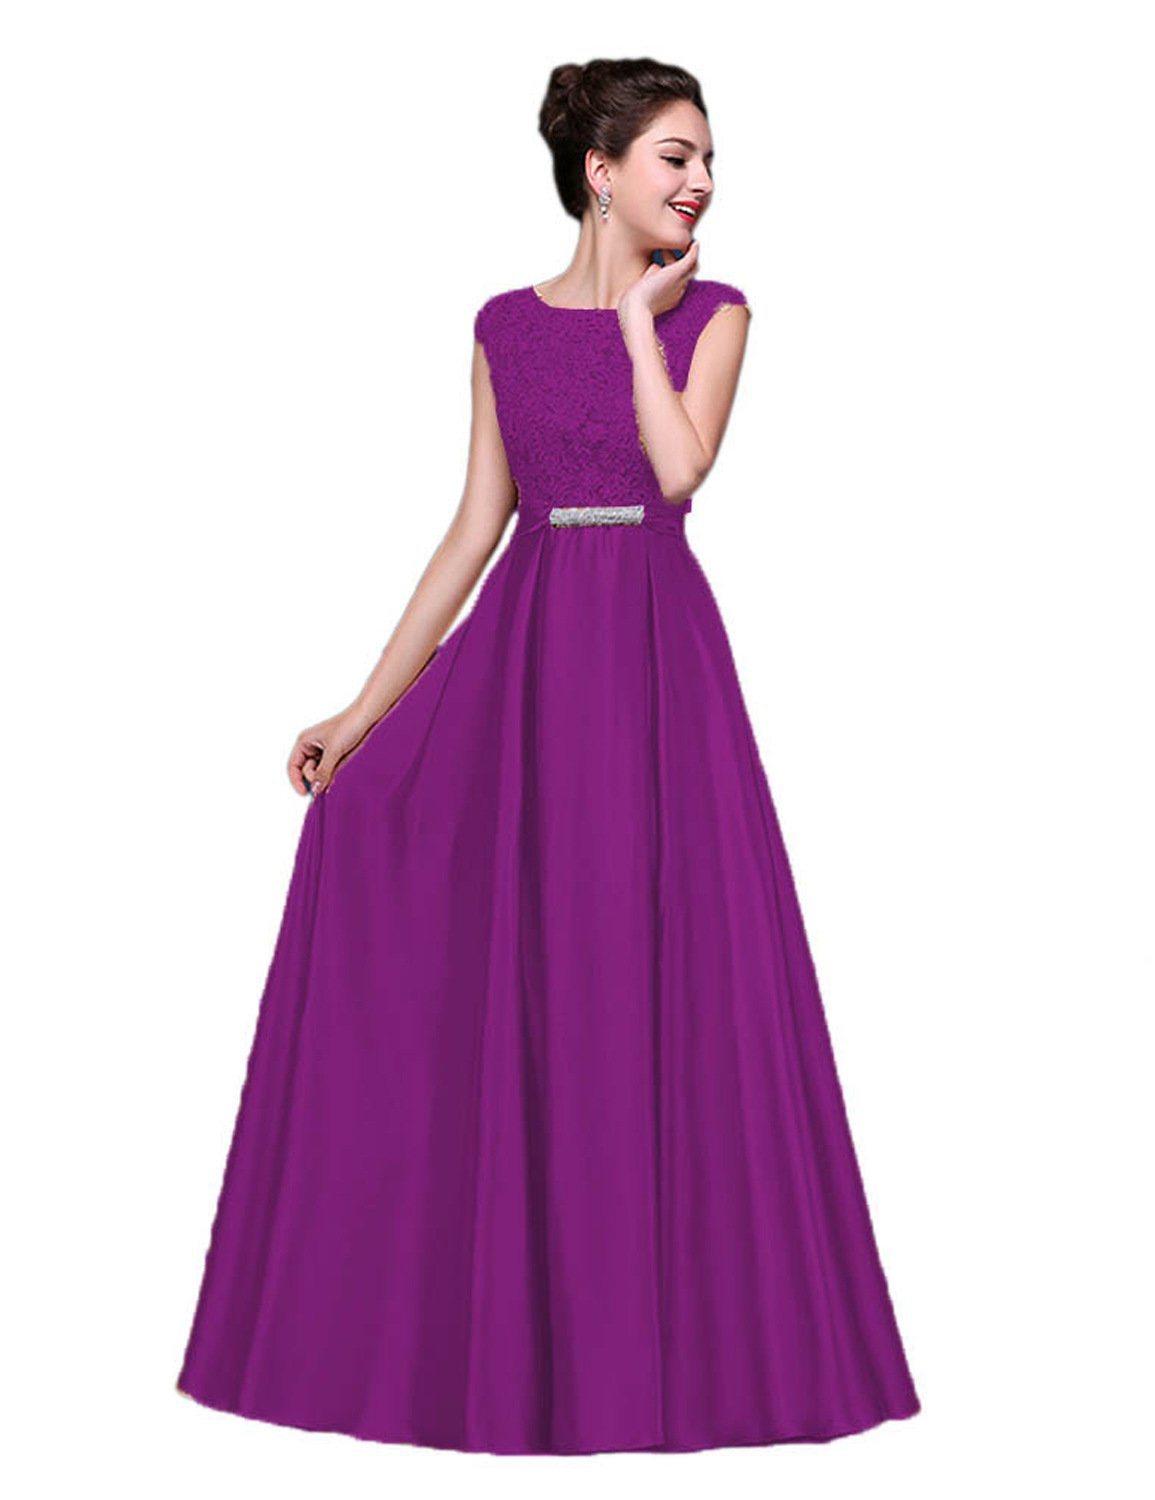 Vimans Women's 2018 Elegant Long Scoop Lace Satin Bridesmaid Evening Gowns Dress355